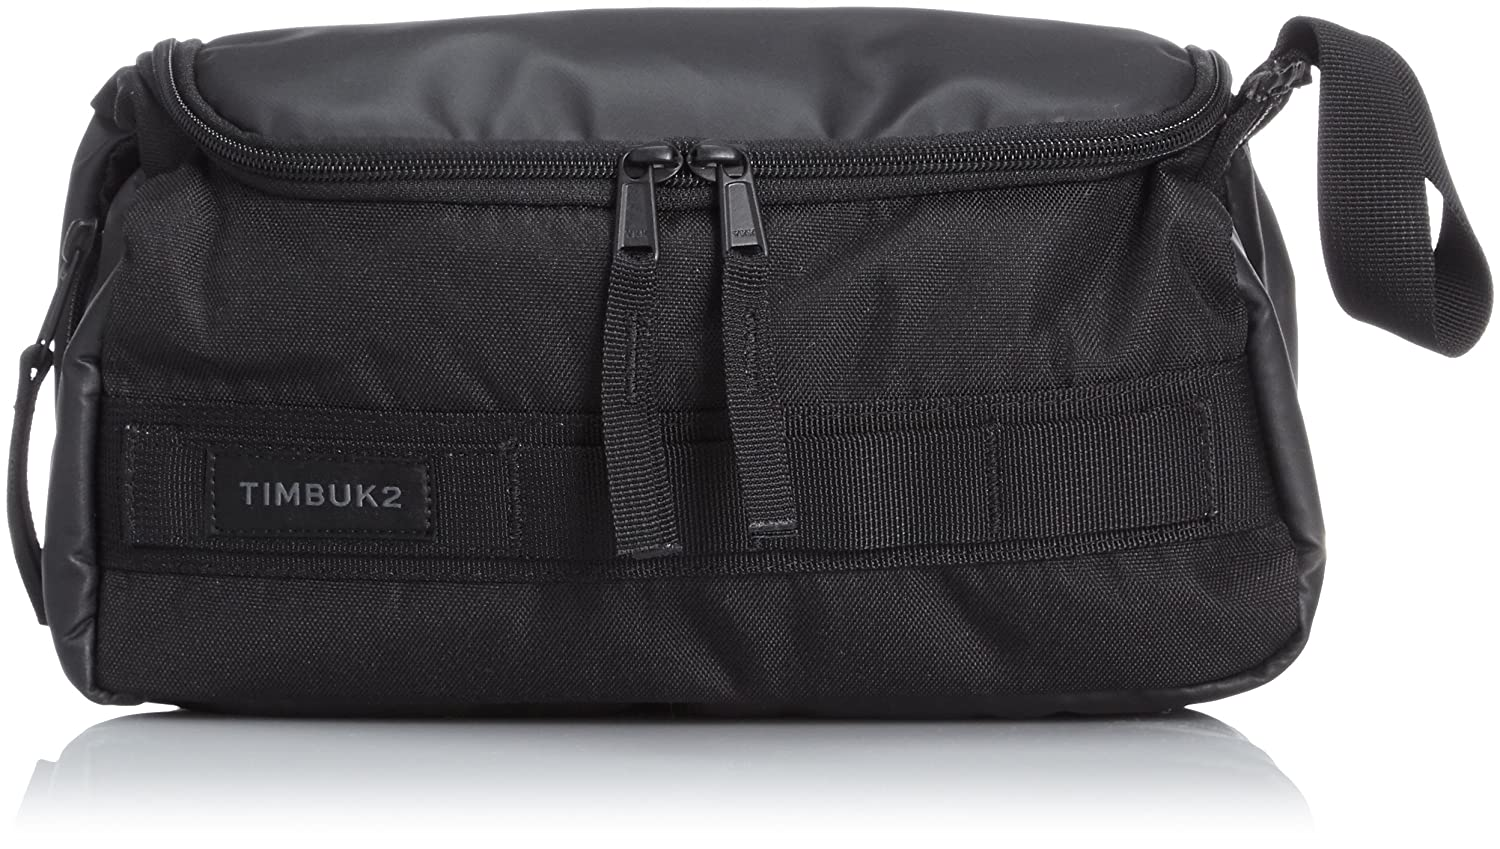 mens toiletry bag for travel trips camping hiking weekend